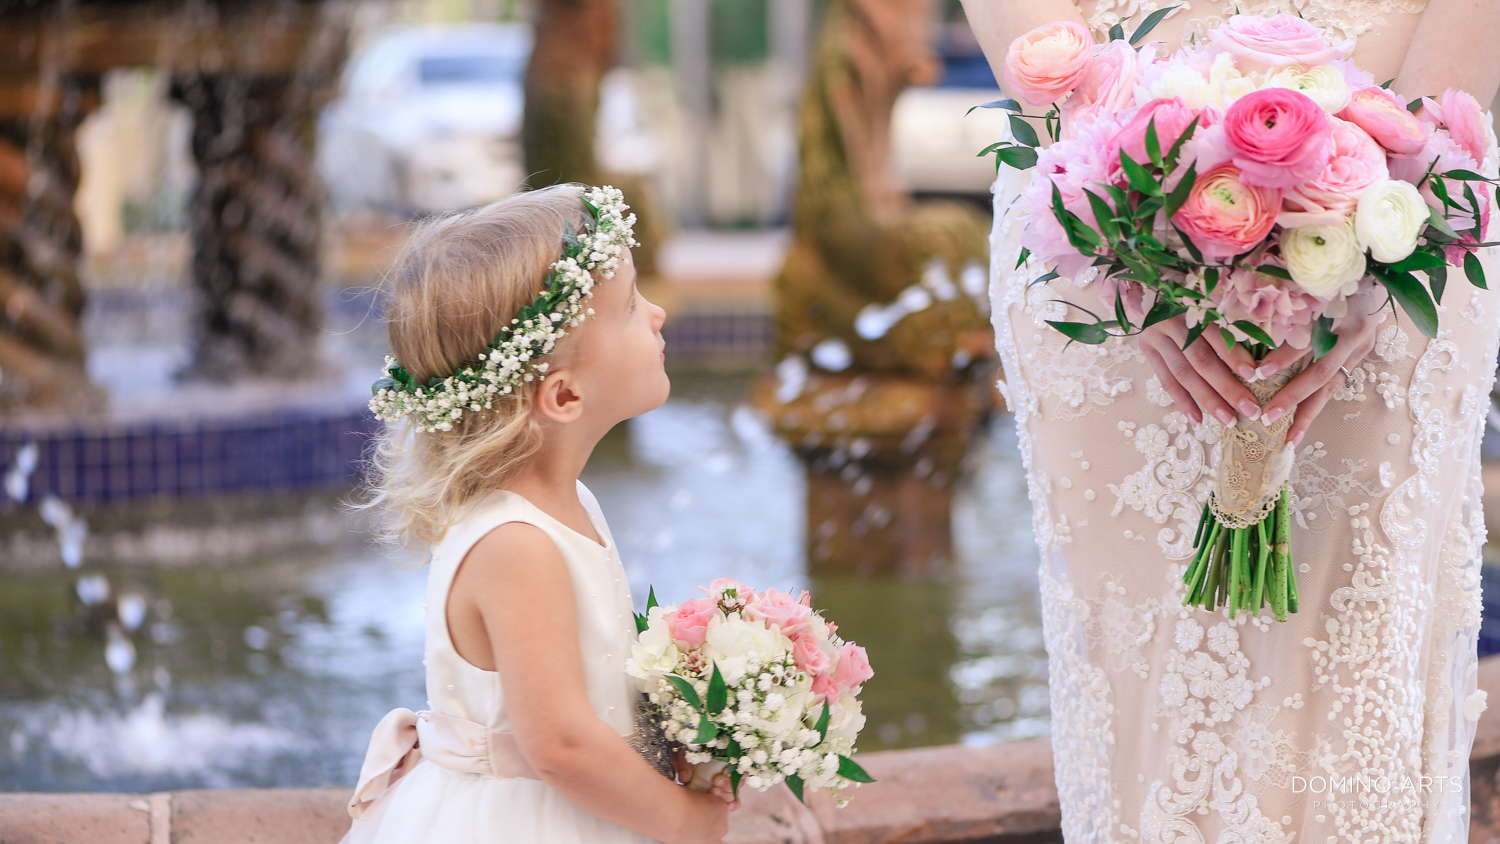 Flower girl bouquet with peony flowers at The Ritz Carlton Sarasota